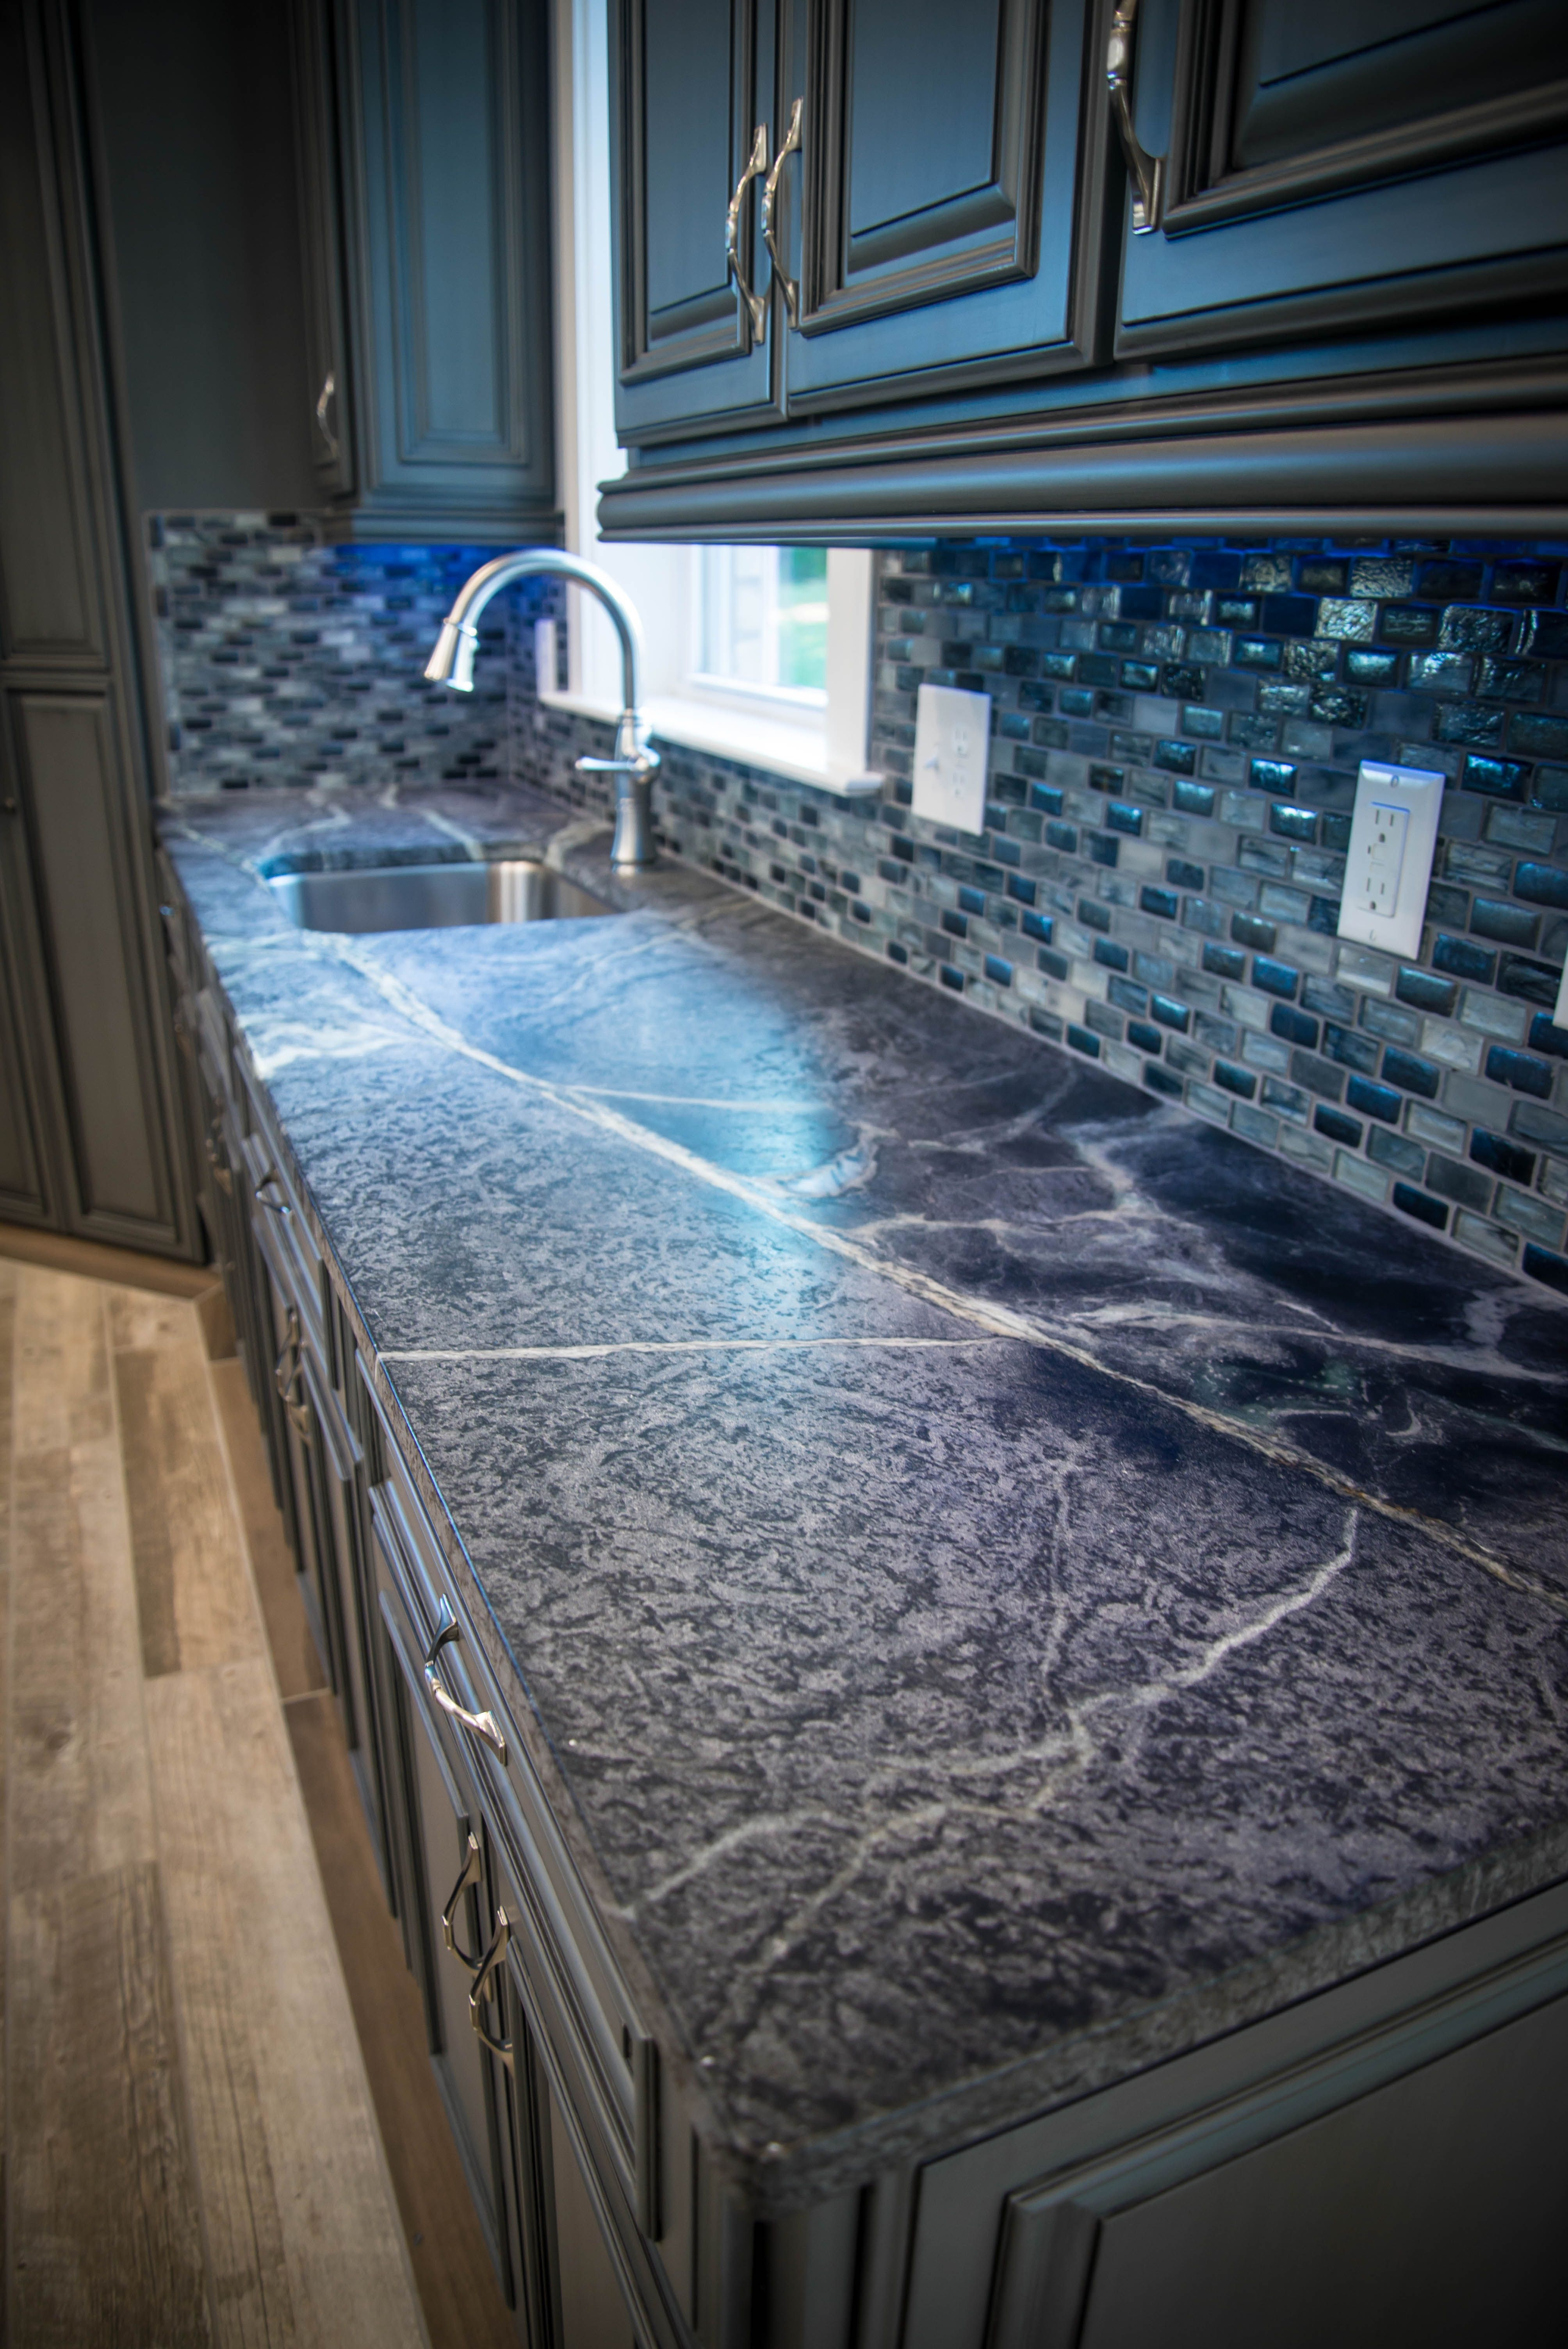 Pin By Bloomday Granite Marble On Bloomday Granite Marble Finished Product Marble Granite Granite This Or That Questions